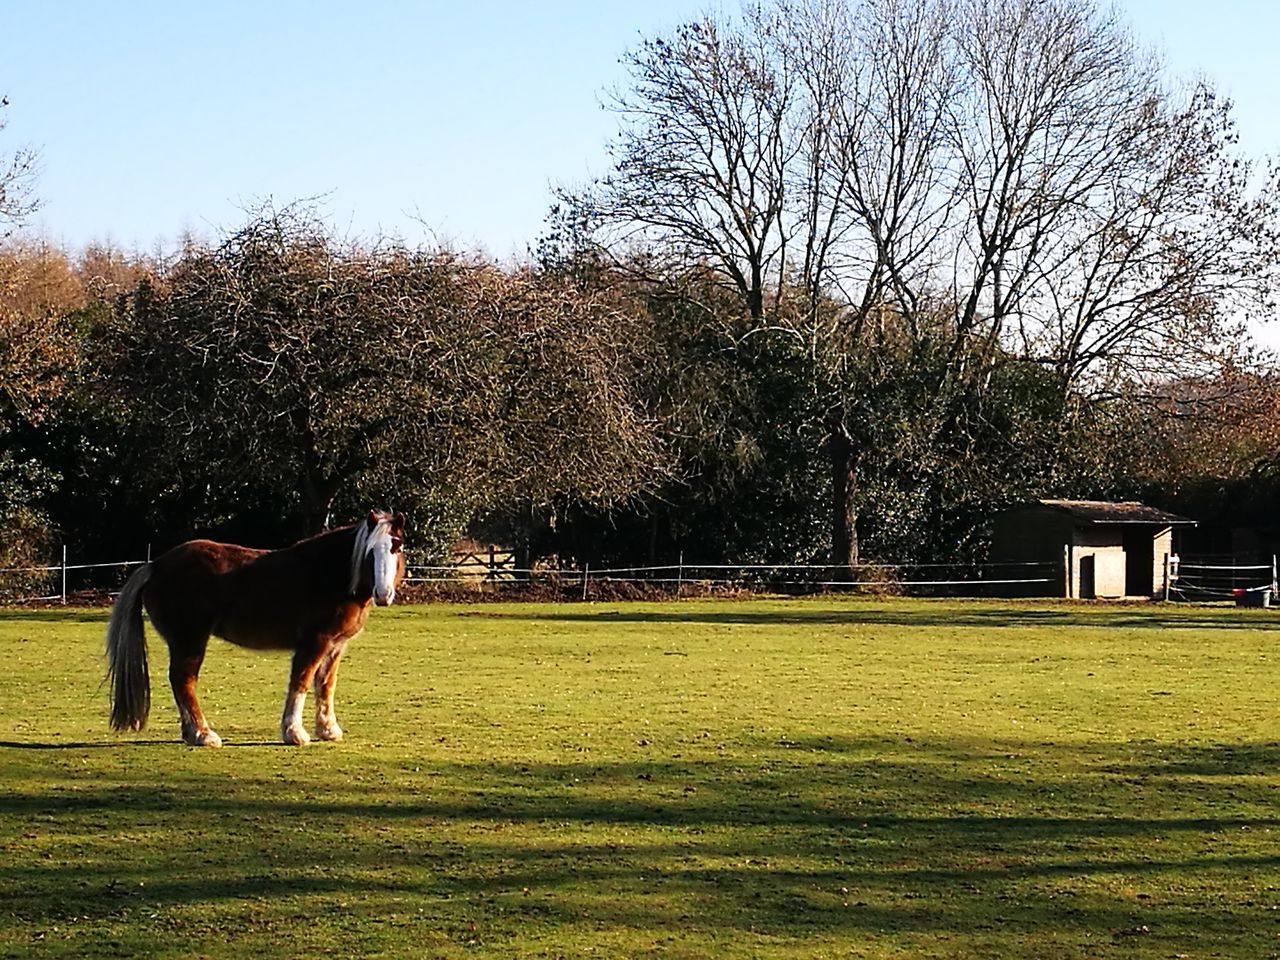 tree, domestic animals, grass, bare tree, mammal, animal themes, horse, field, nature, growth, day, outdoors, no people, sky, one animal, branch, clear sky, beauty in nature